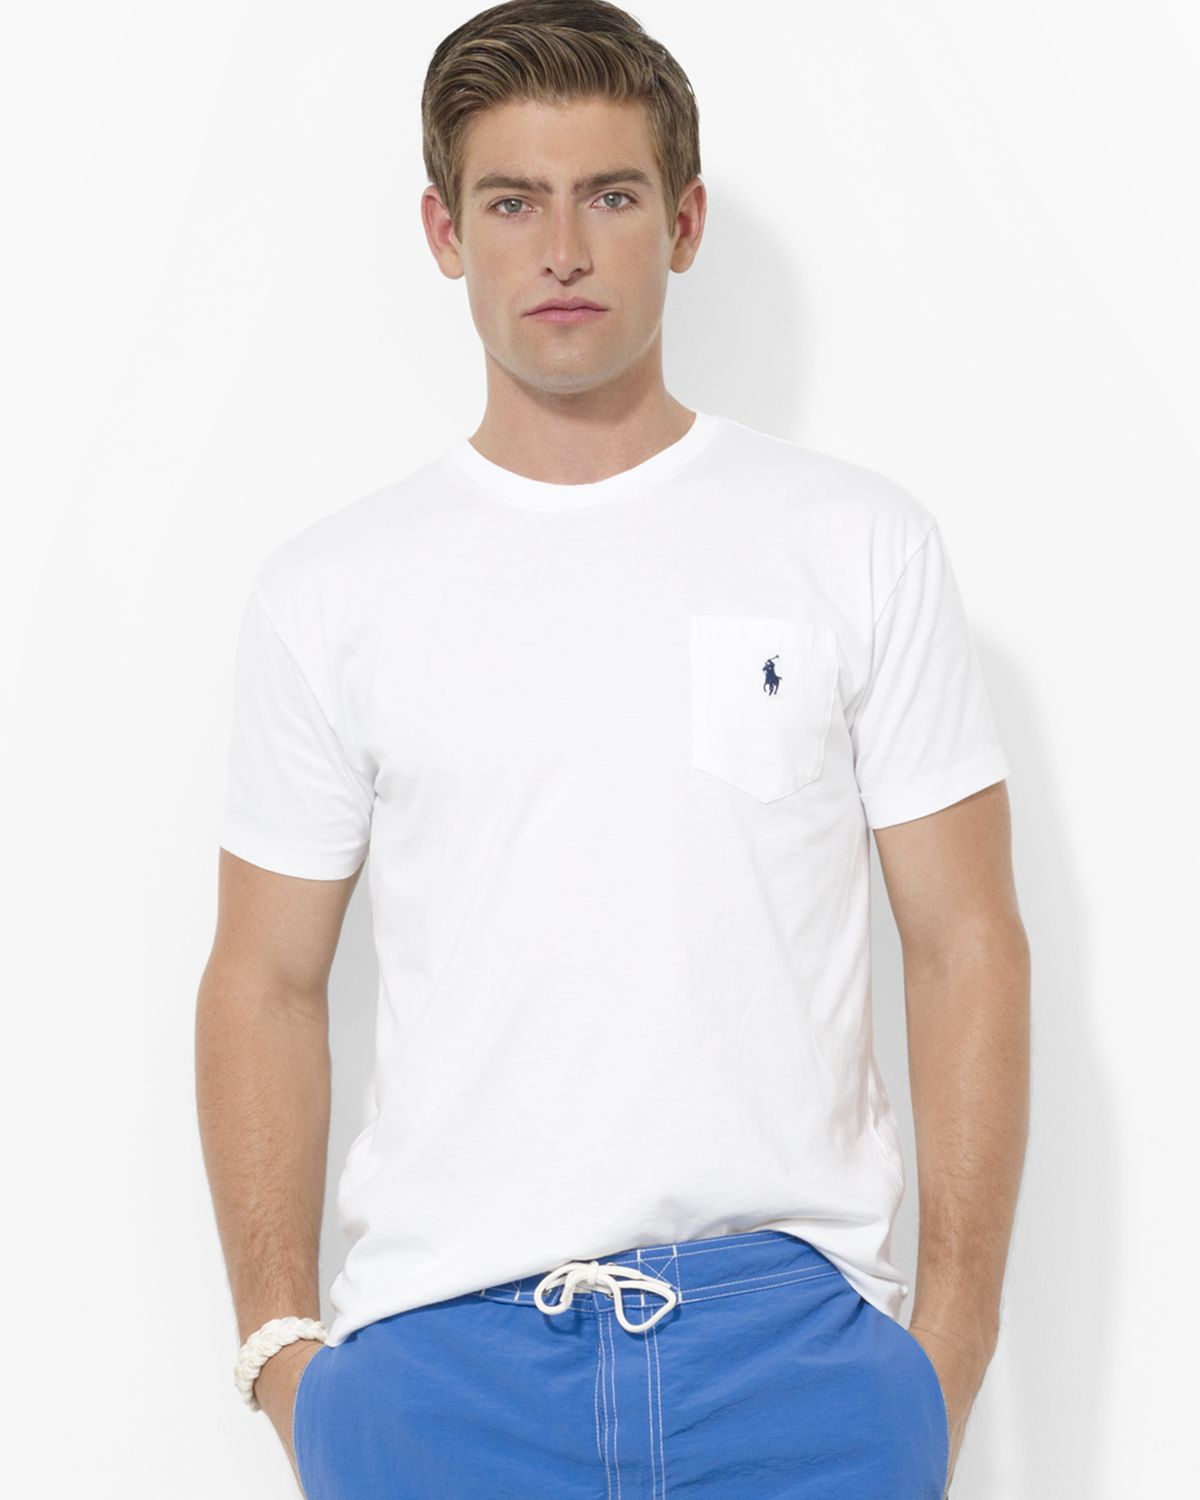 ralph lauren polo classic fit short sleeved cotton pocket tee in white for men lyst. Black Bedroom Furniture Sets. Home Design Ideas